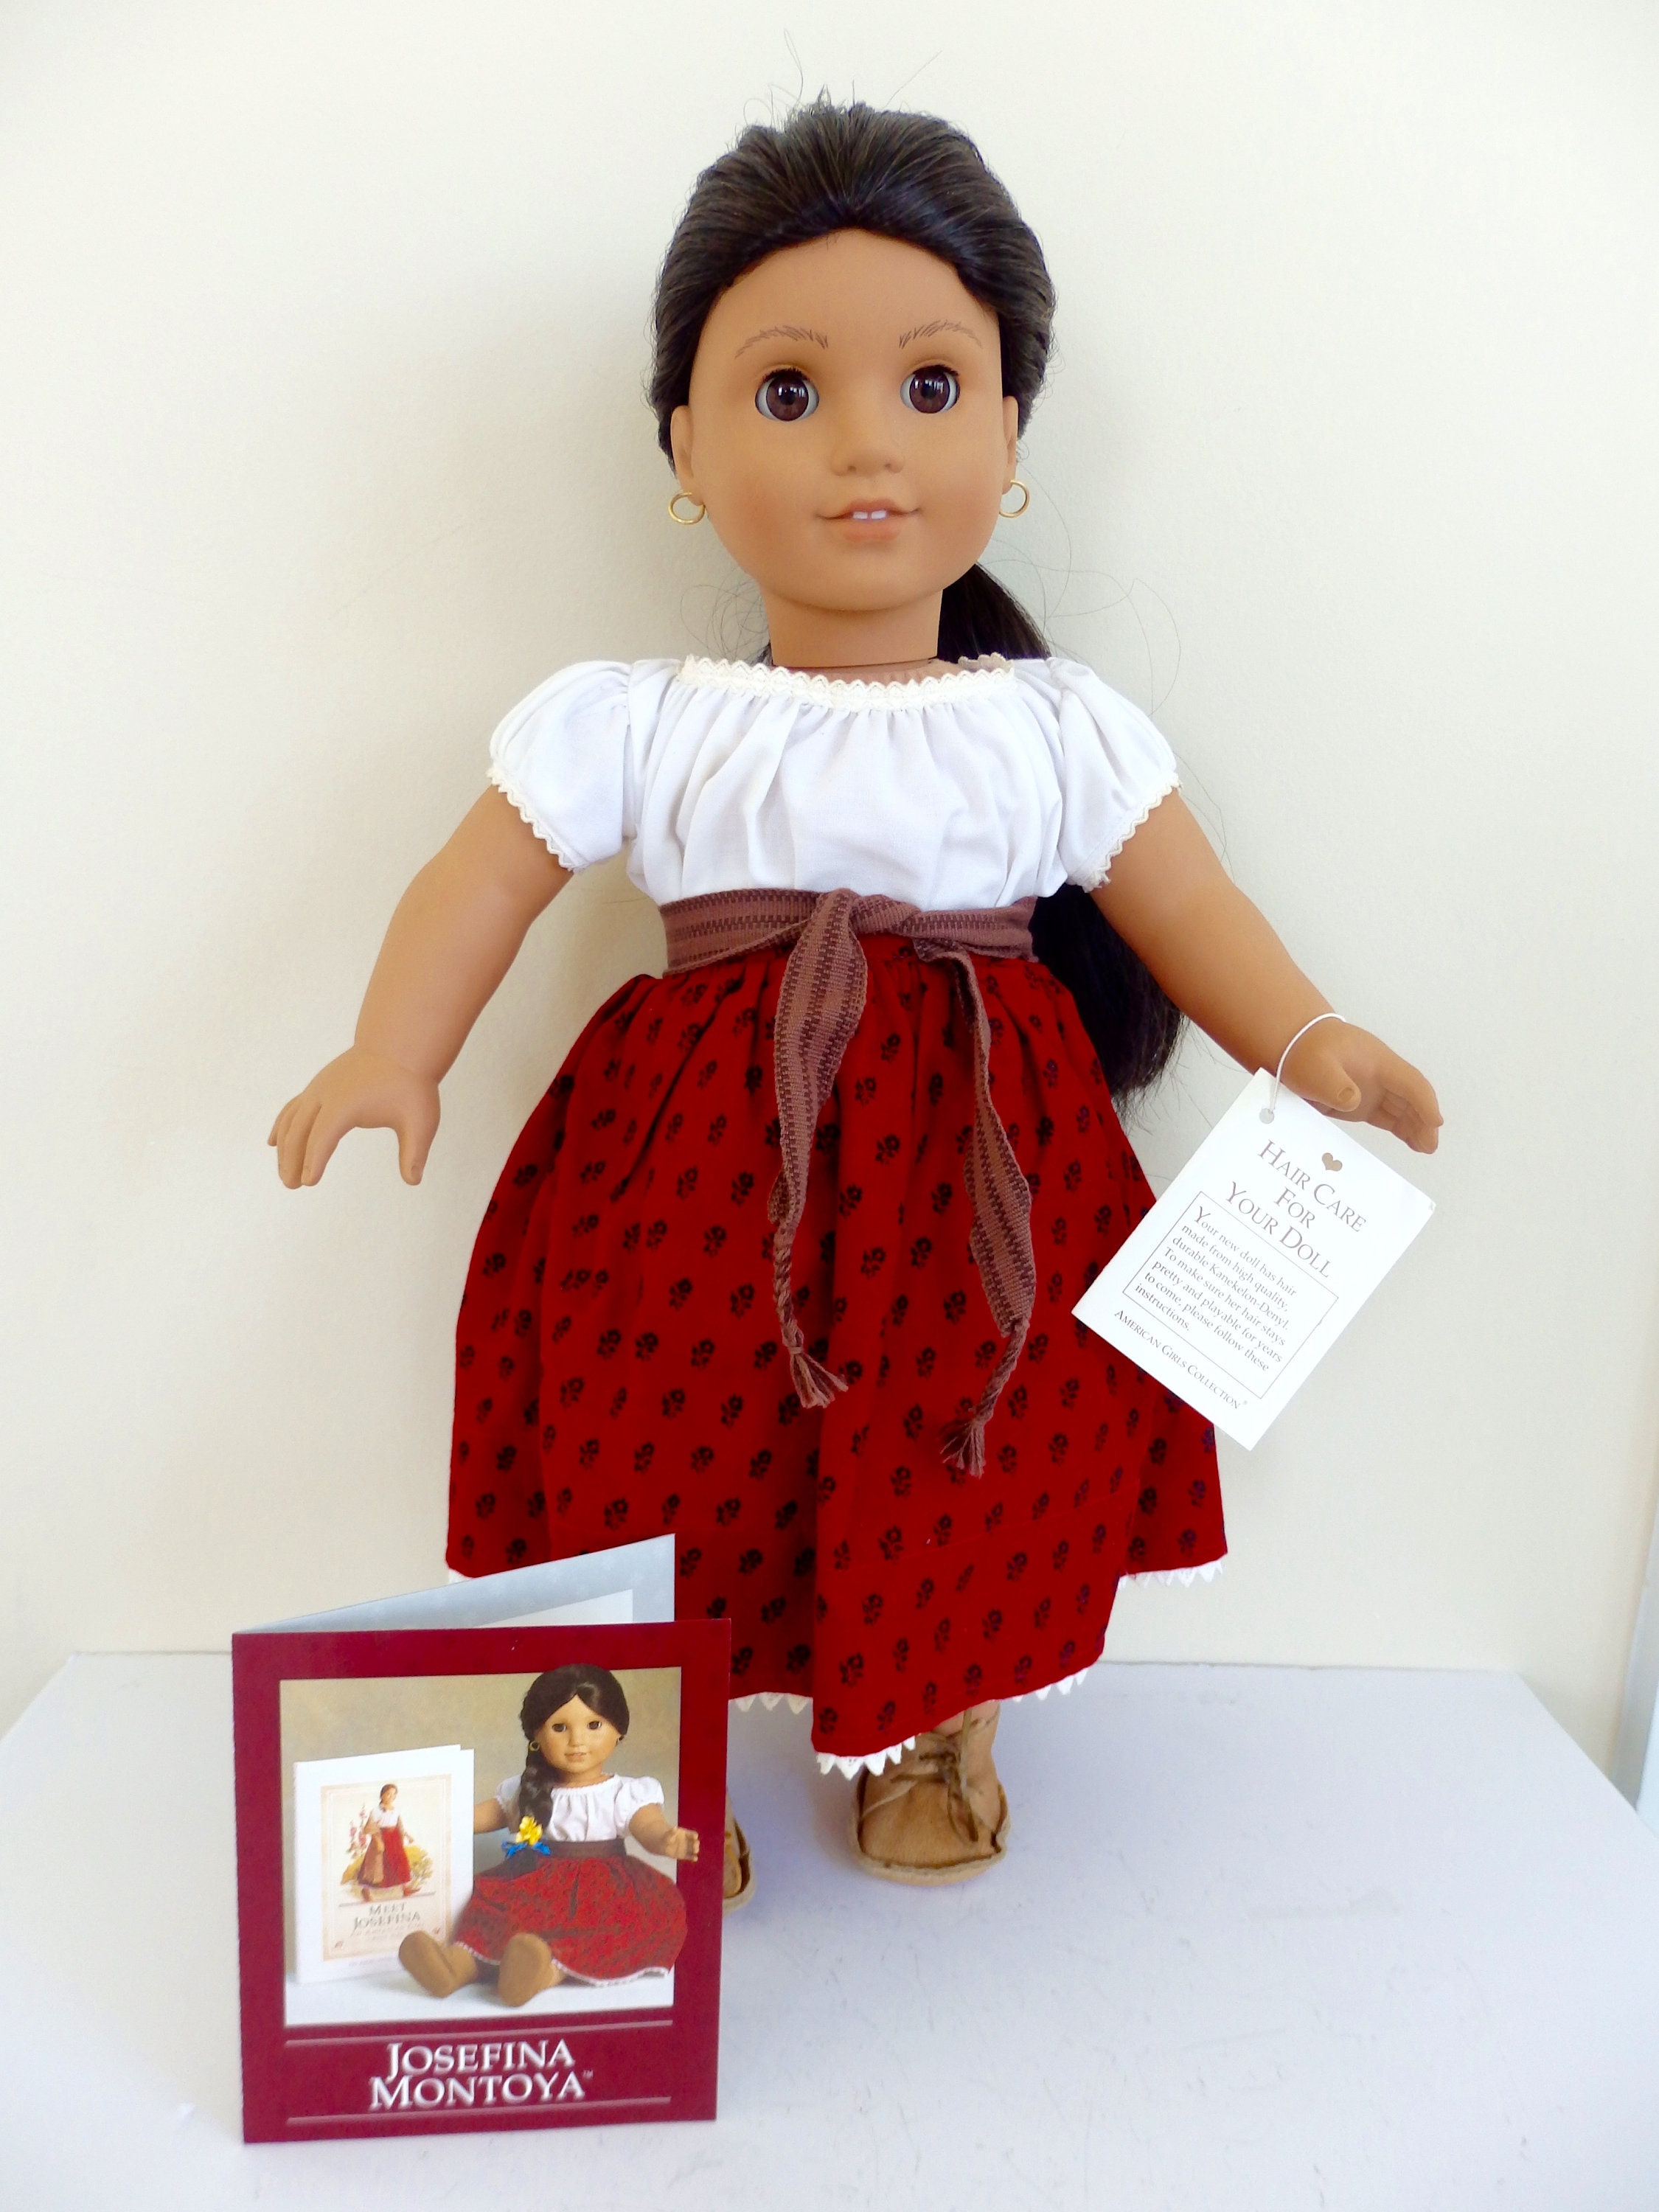 Buy Inspiration Inspirationfashion american girl doll josefina pictures trends